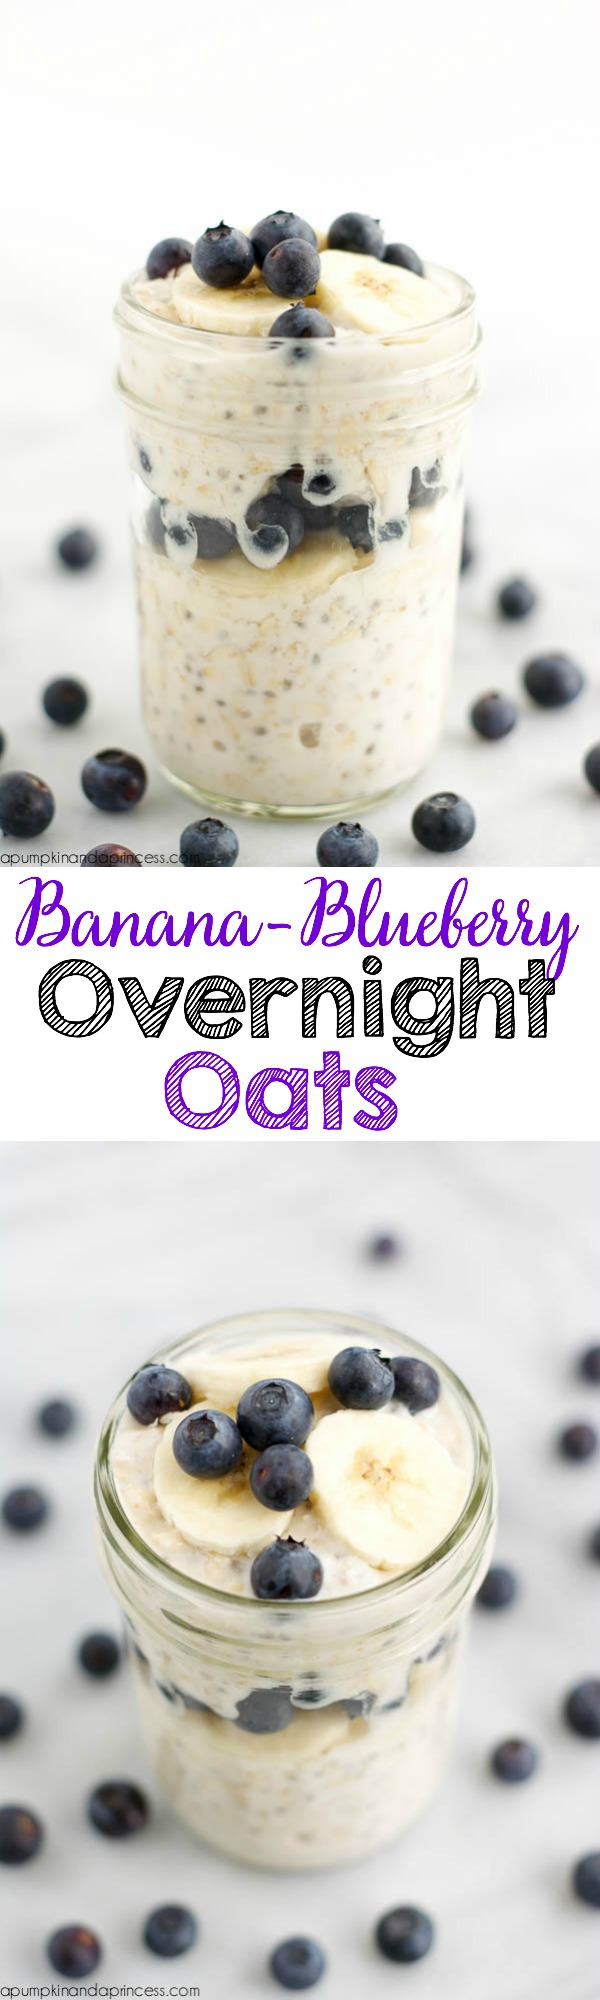 Forum on this topic: Refrigerator Oatmeal with Bananas Berries, refrigerator-oatmeal-with-bananas-berries/